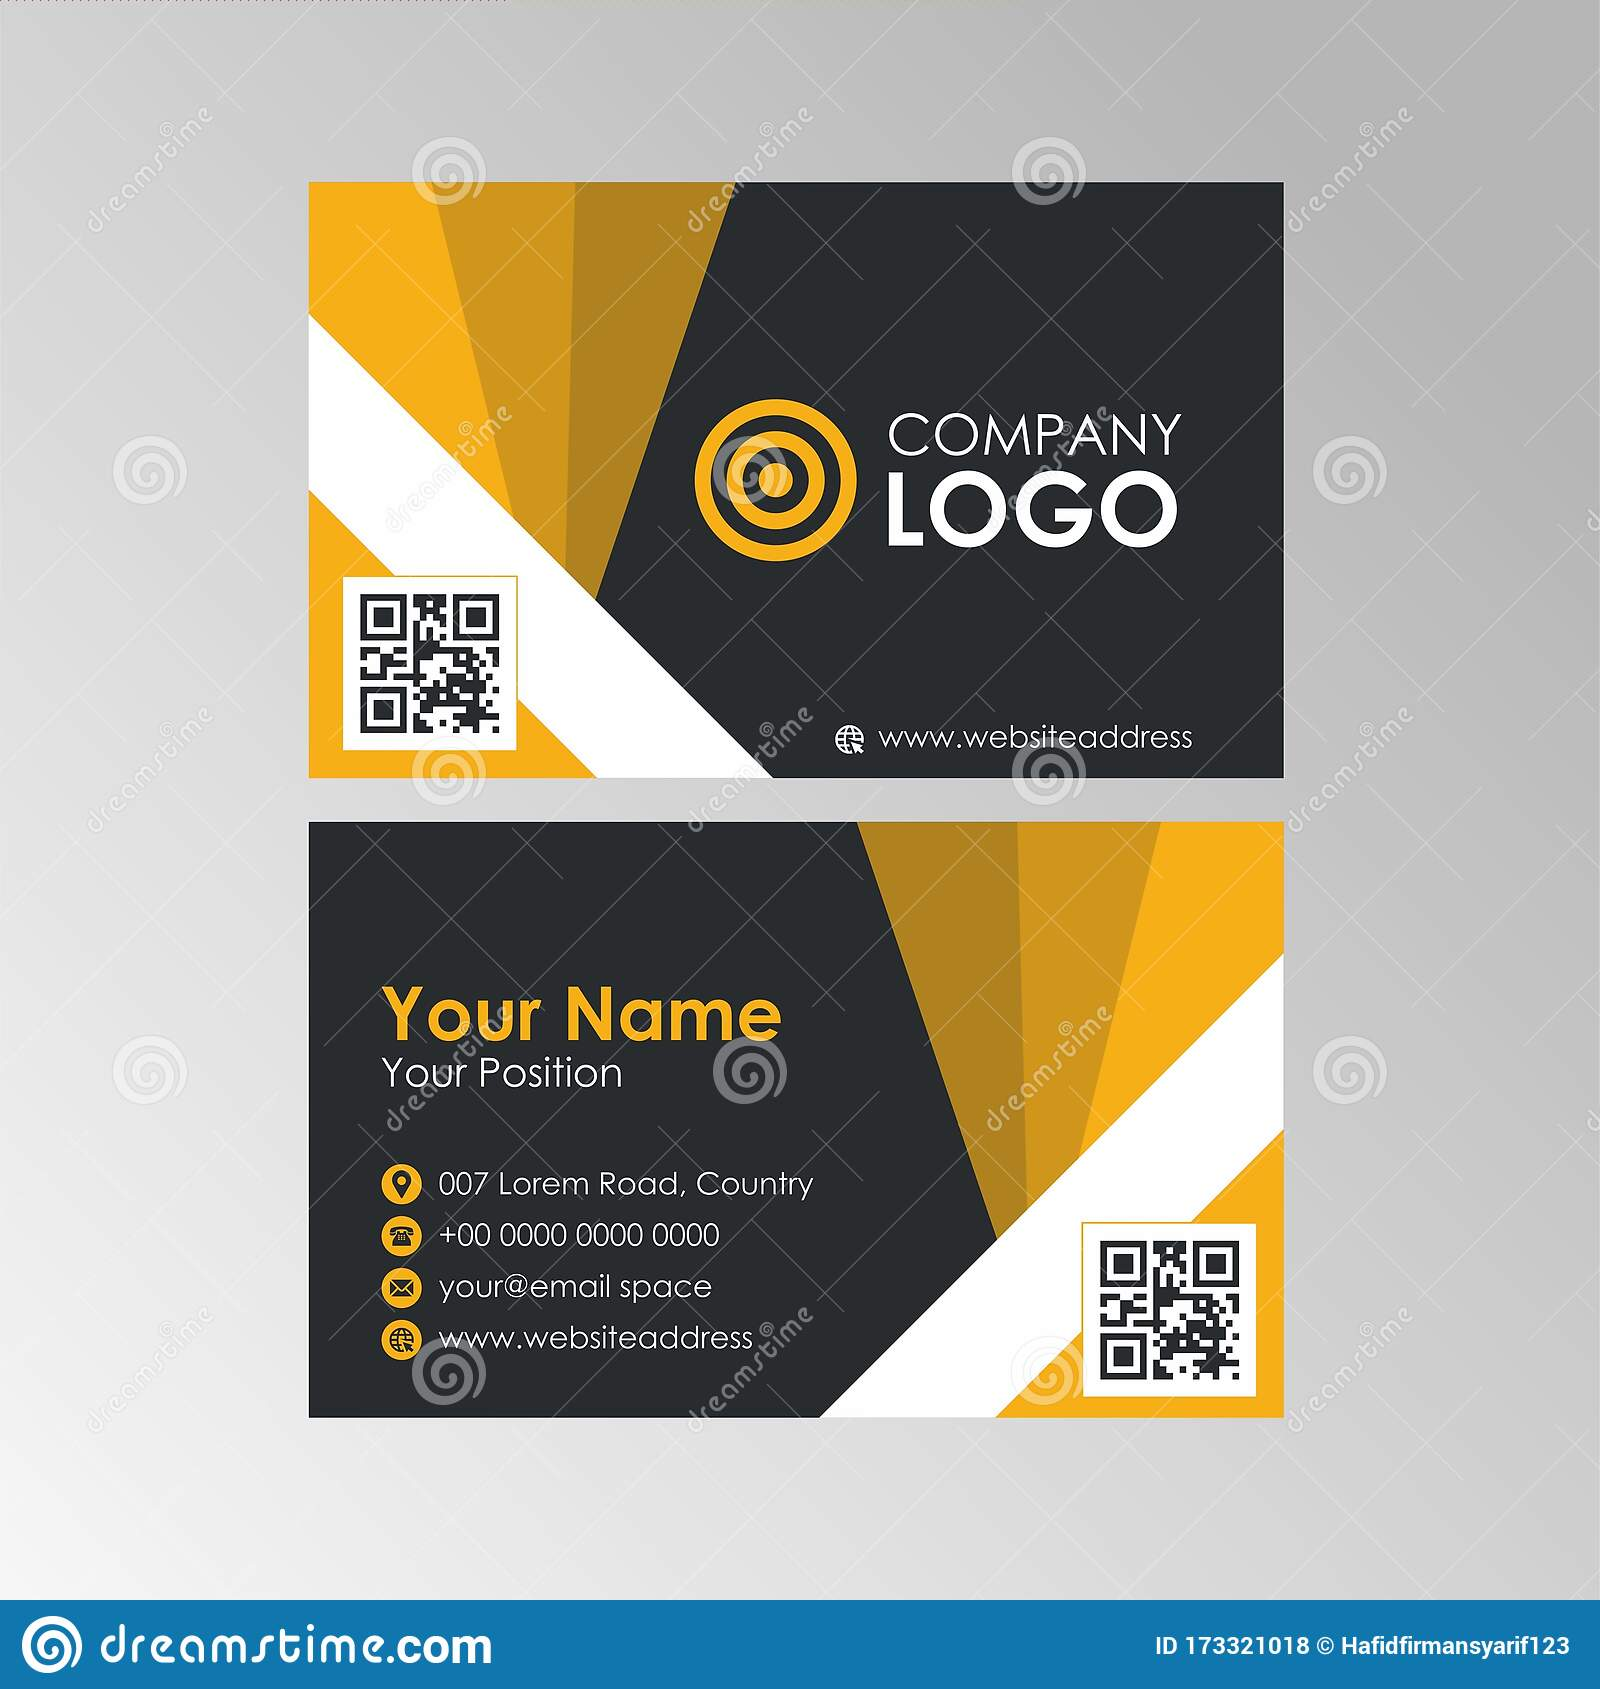 Simple Geometric Yellow And Black Business Card Design Template Within Qr Code Business Card Template